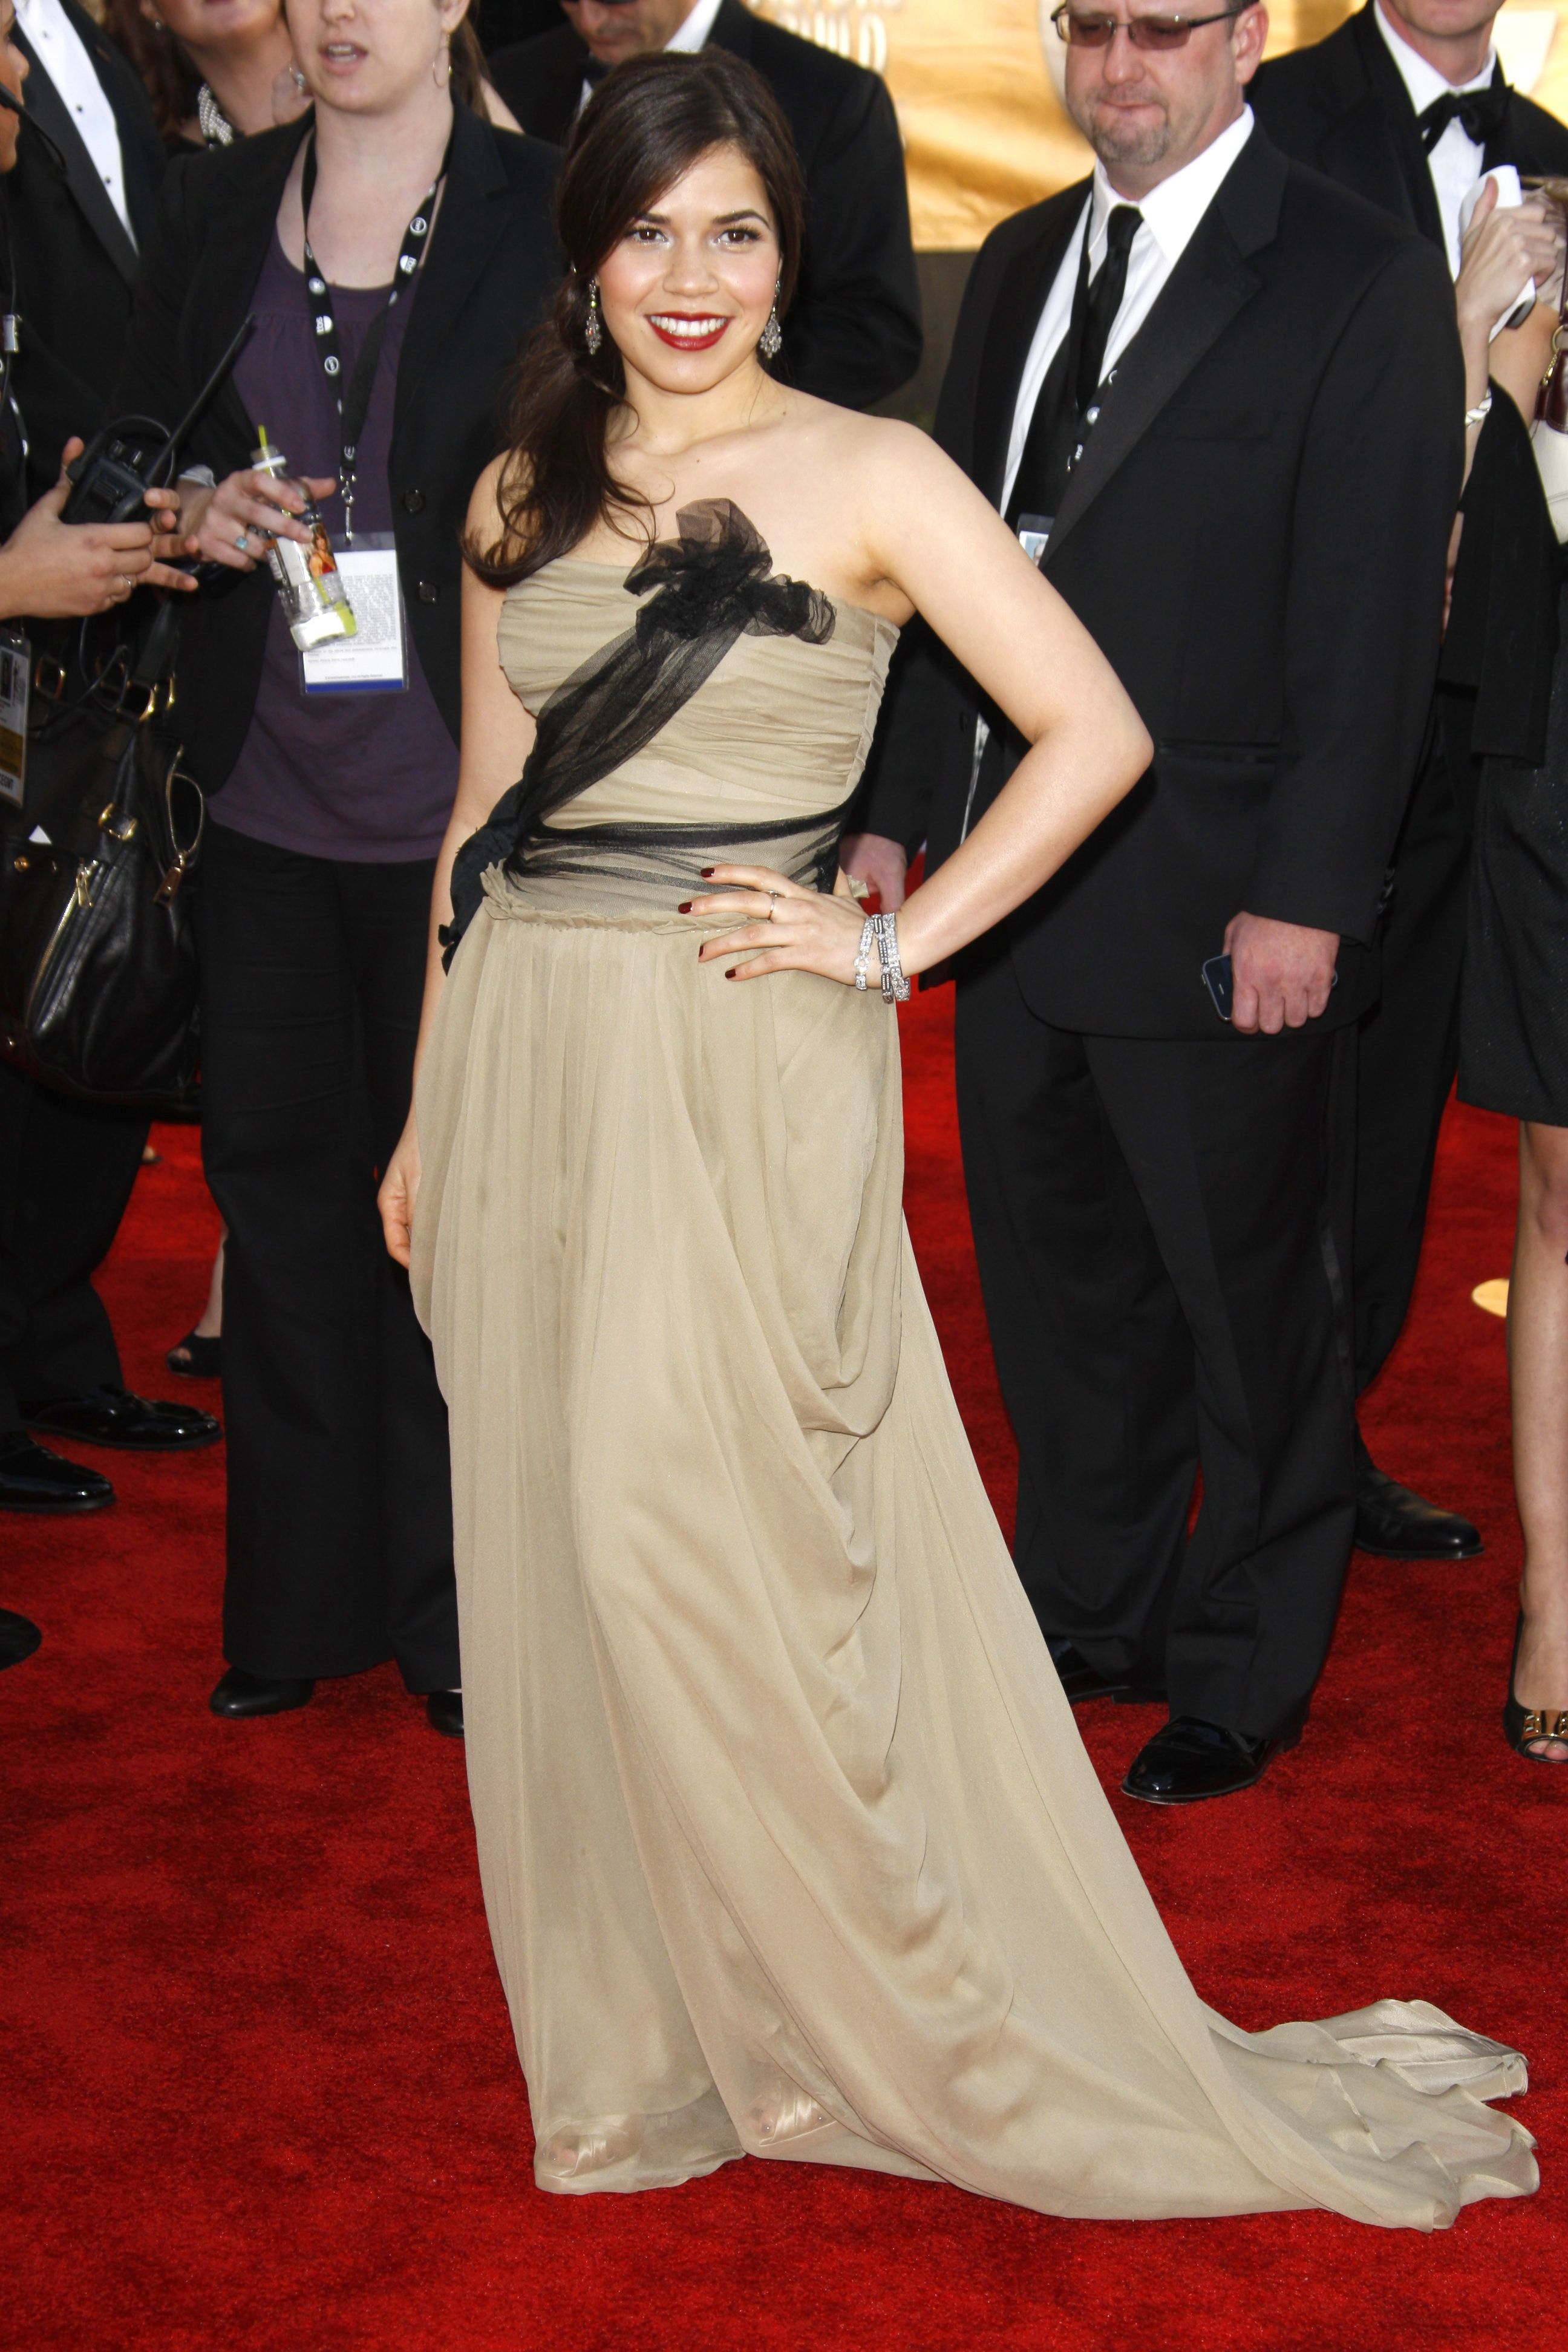 America Ferrera attends the 15th Annual Screen Actors Guild Awards in Los Angeles on Jan. 25, 2009.